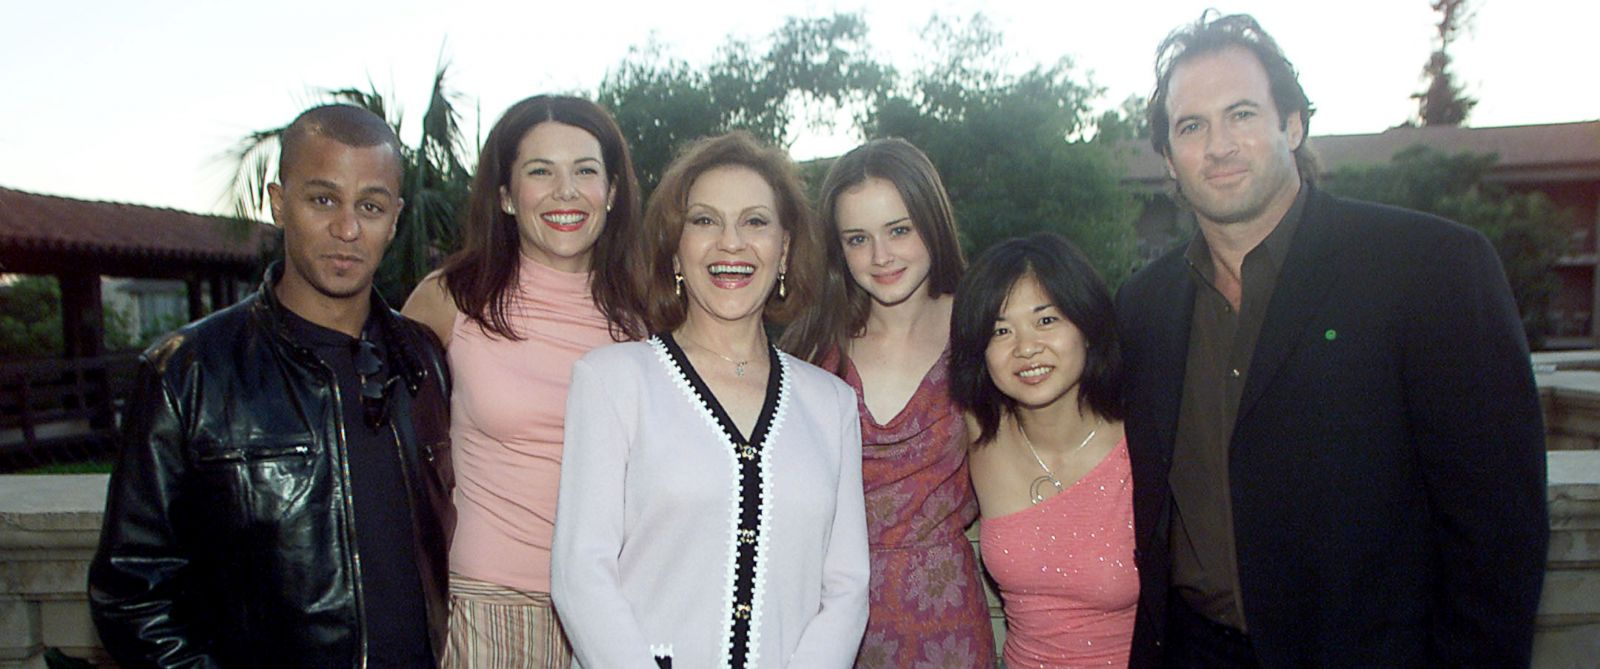 PHOTO: Gilmore Girls cast members, from left, Yanic Truesdale, Lauren Graham, Kelly Bishop, Alexis Bledel, Keiko Agena and Scott Patterson at the 17th Annual TCA Awards in Huntington, Calif., July 21, 2001.